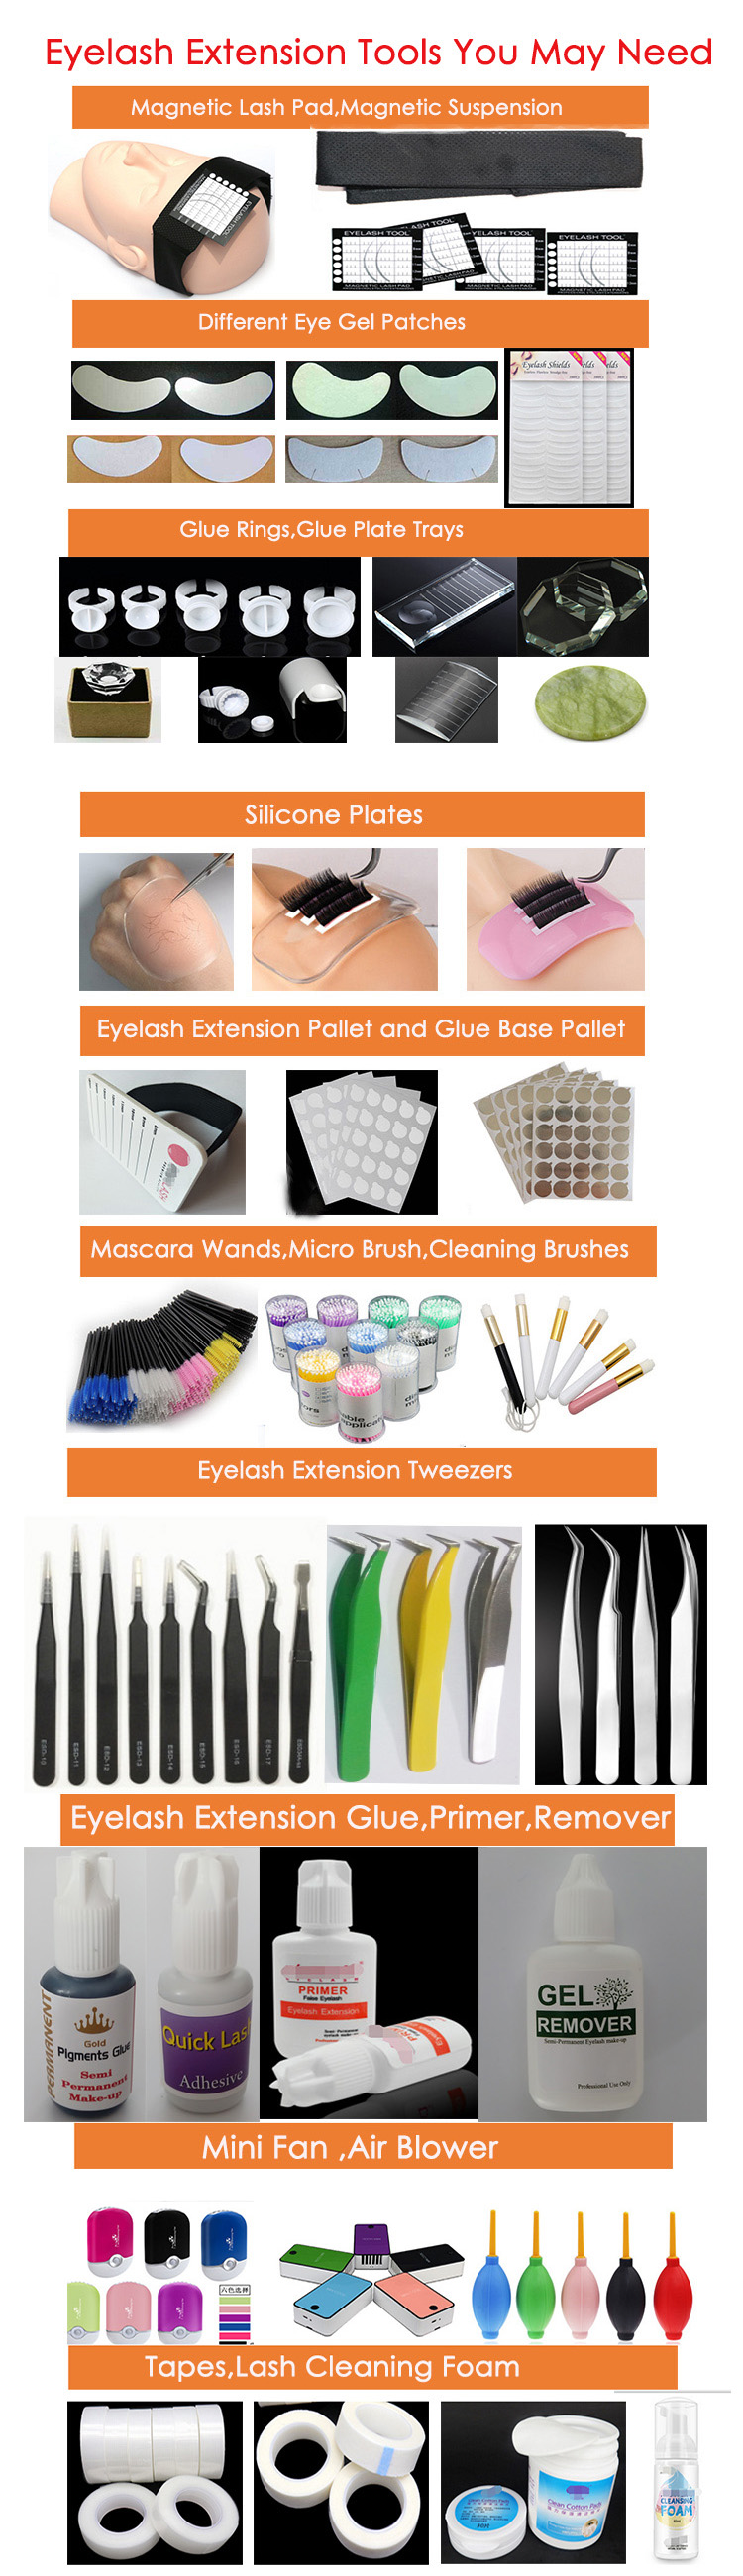 lash extensions tools factory supply China.jpg